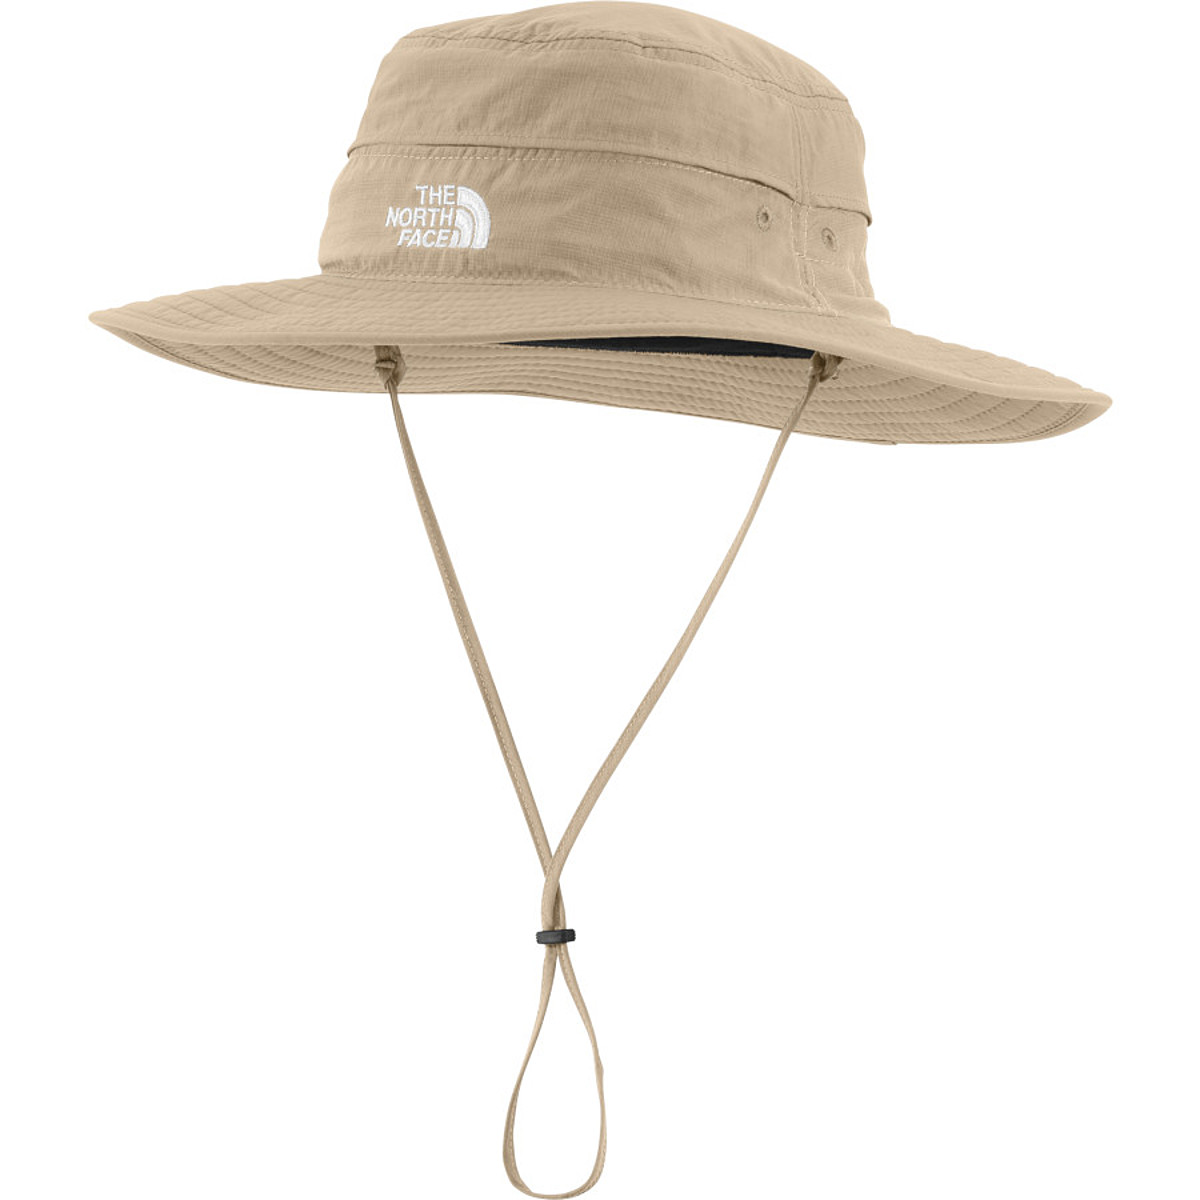 photo: The North Face Horizon Breeze Brimmer Hat sun hat